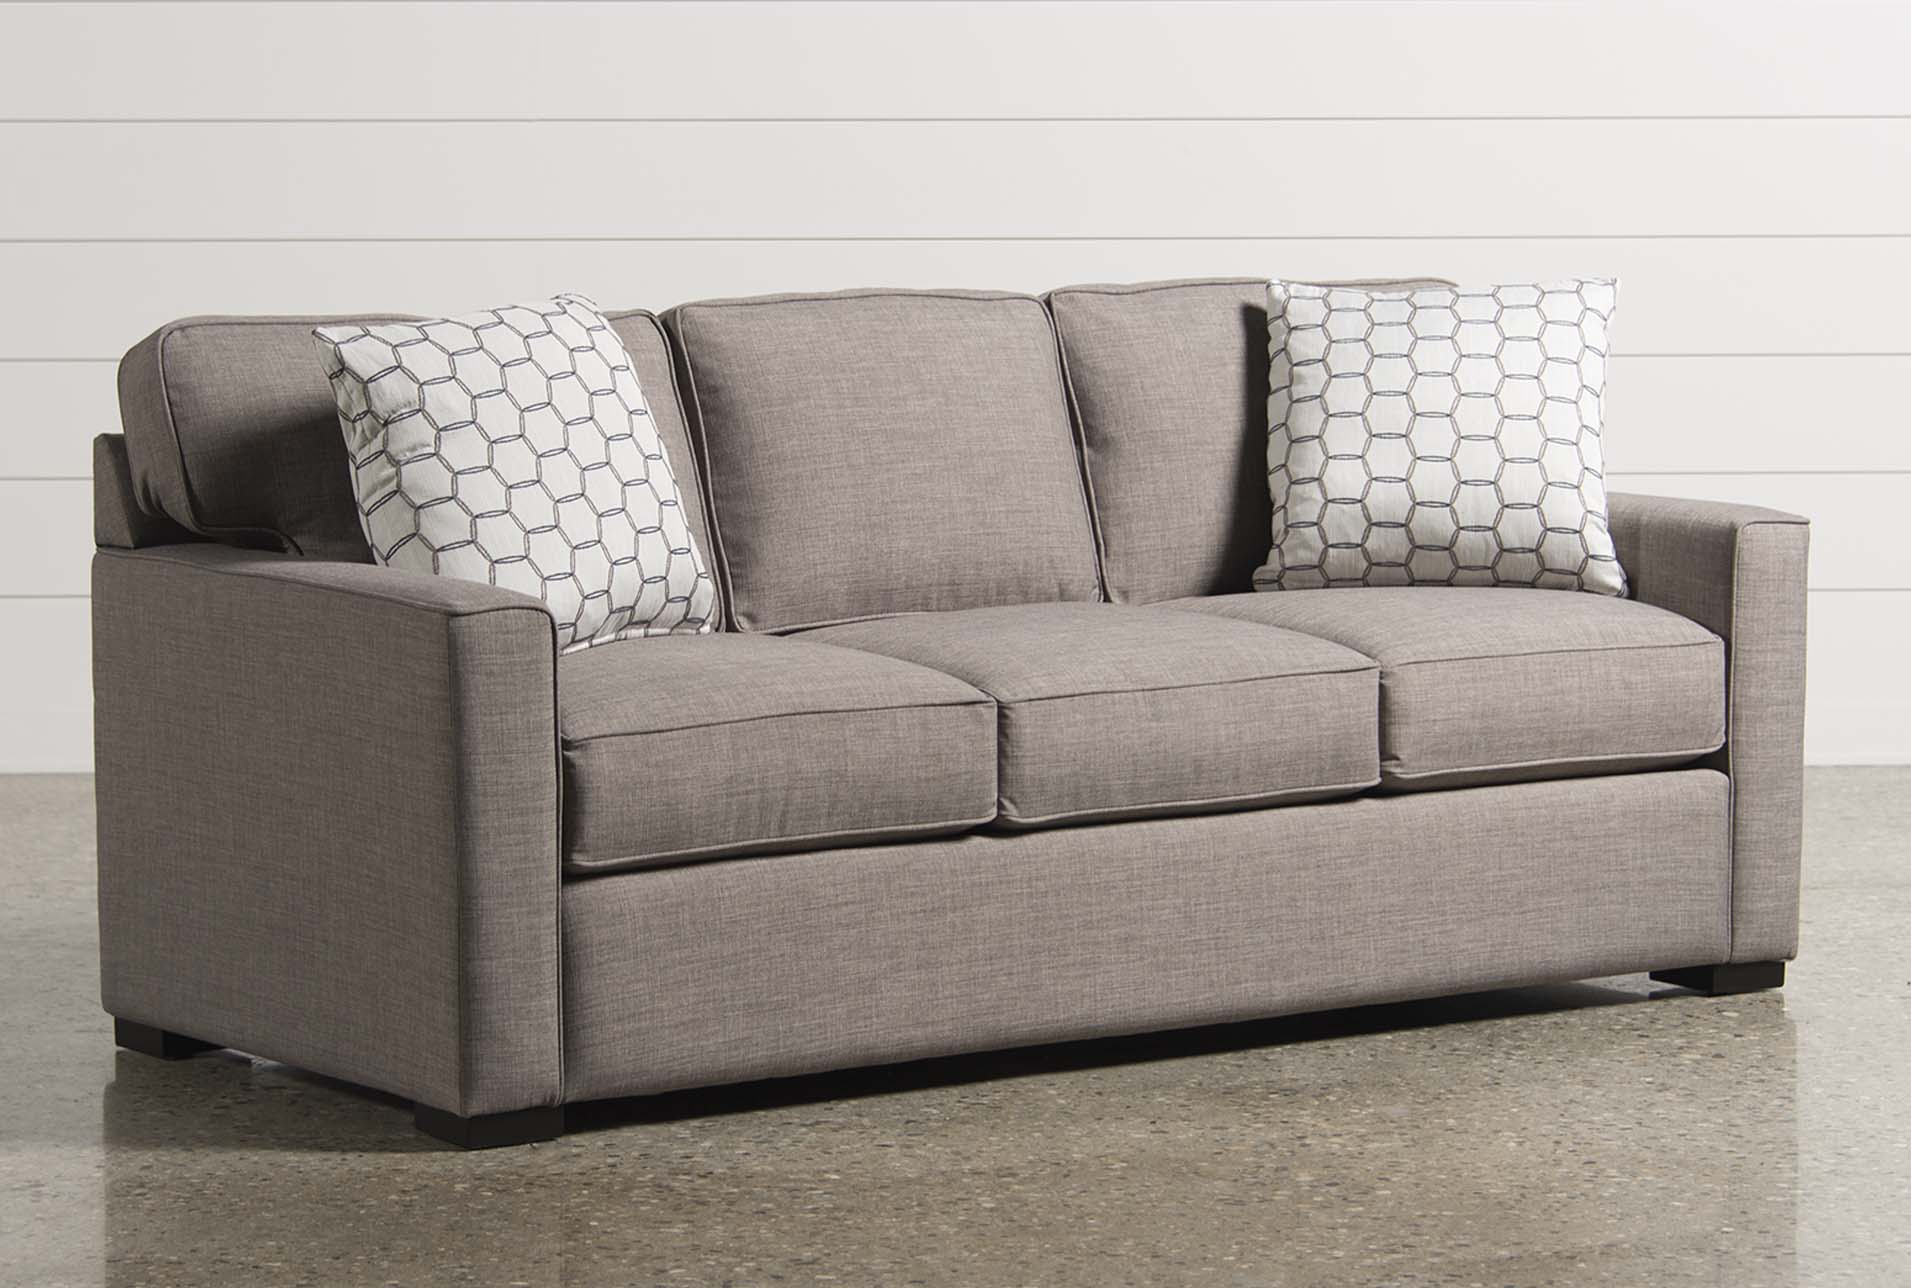 silas memory foam queen sleeper living spaces rh livingspaces com IKEA Sofa Beds for Small Space Living Spaces Futon